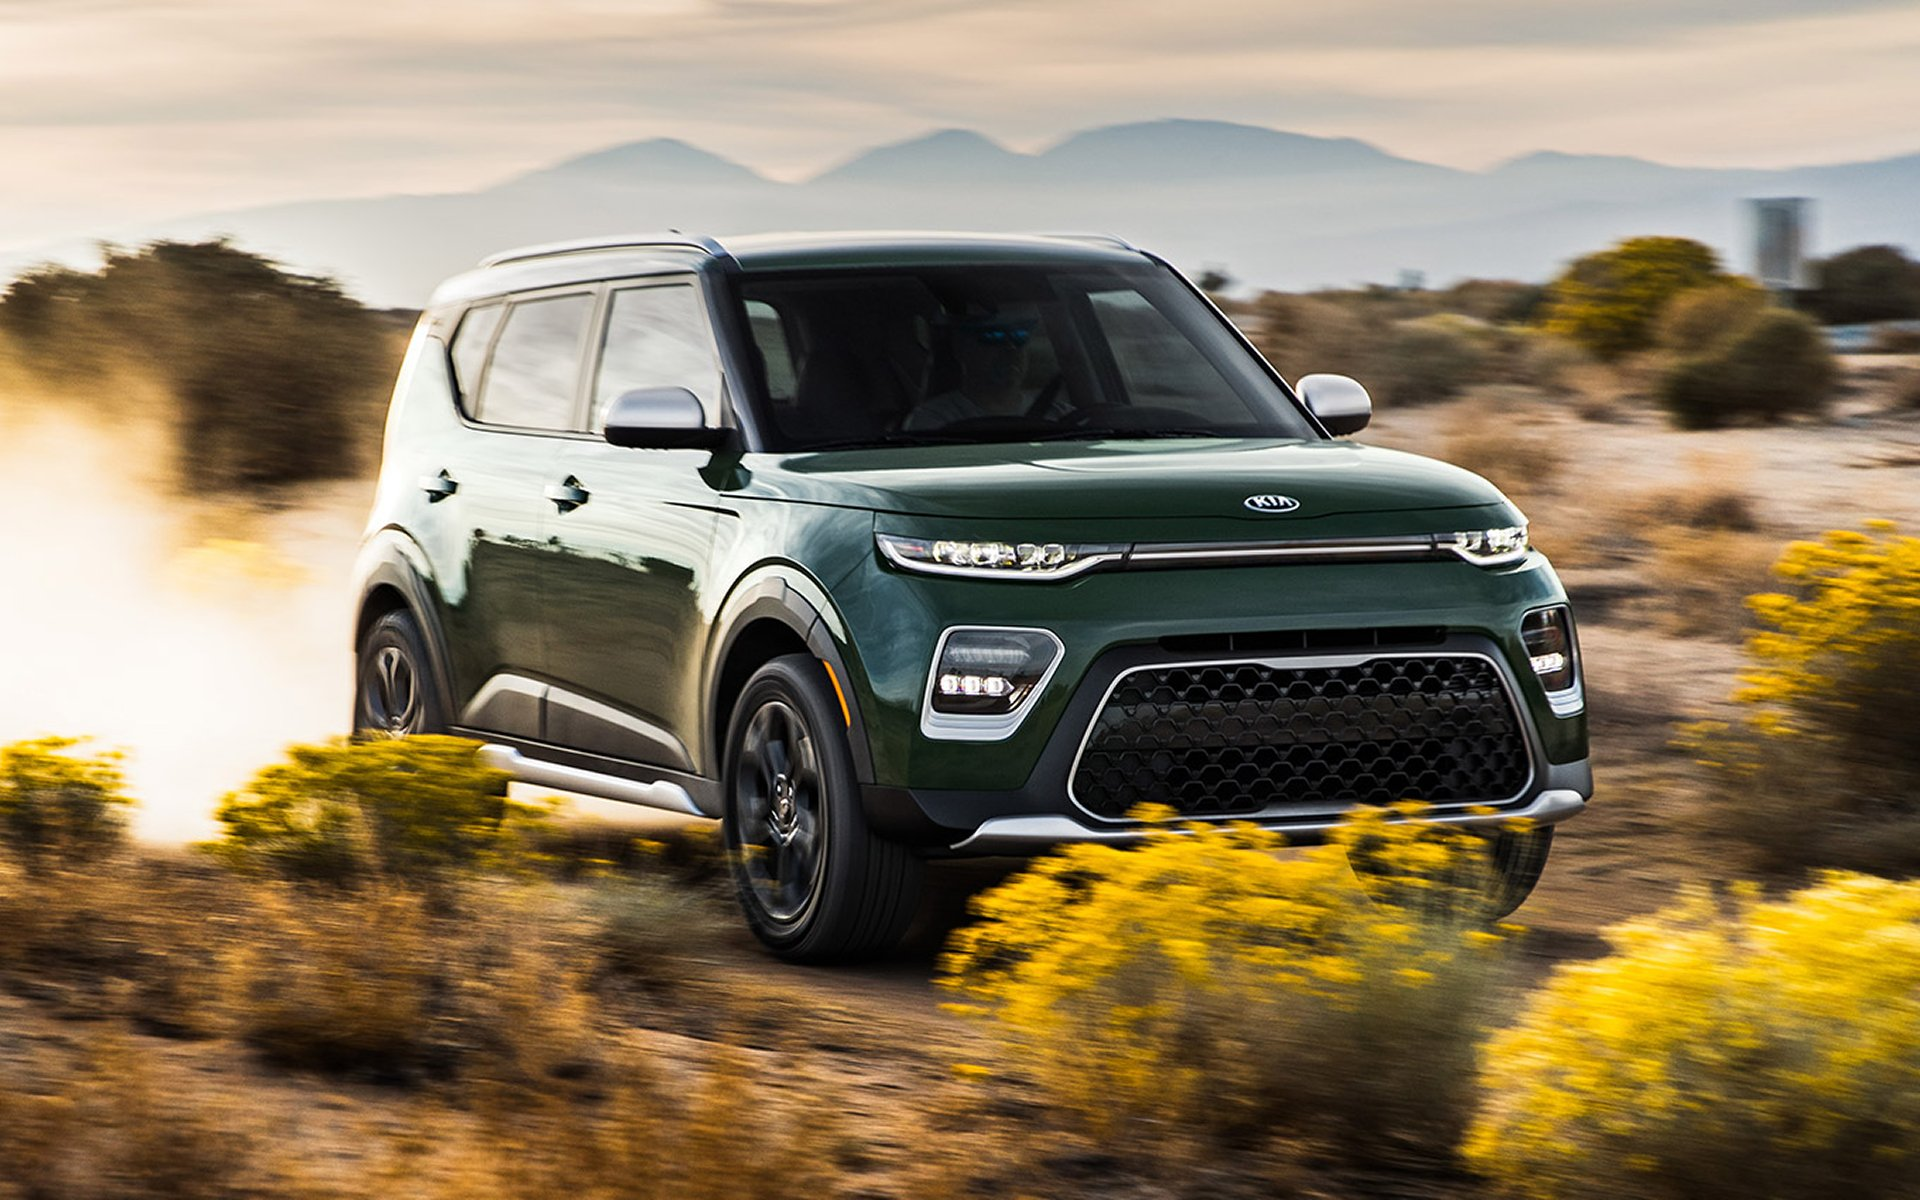 2020 Kia Soul for Sale in North Olmsted, OH